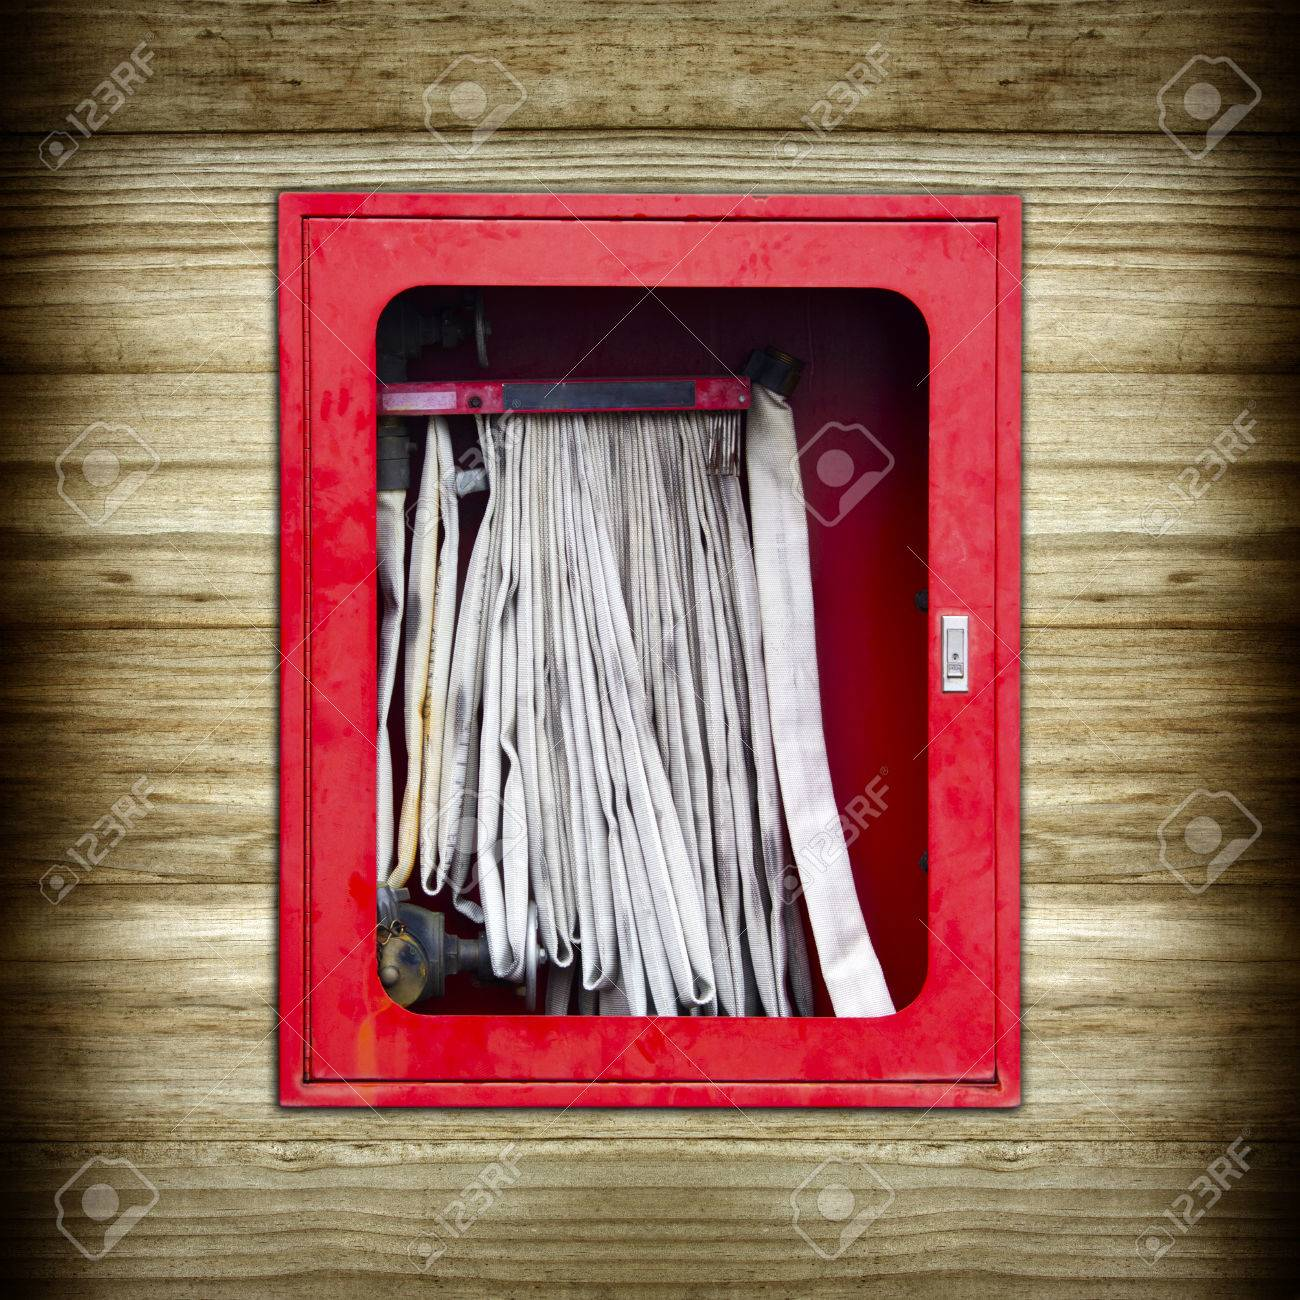 American Fire Hose And Cabinet Fire Hose Cabinet Stock Photos Images Royalty Free Fire Hose